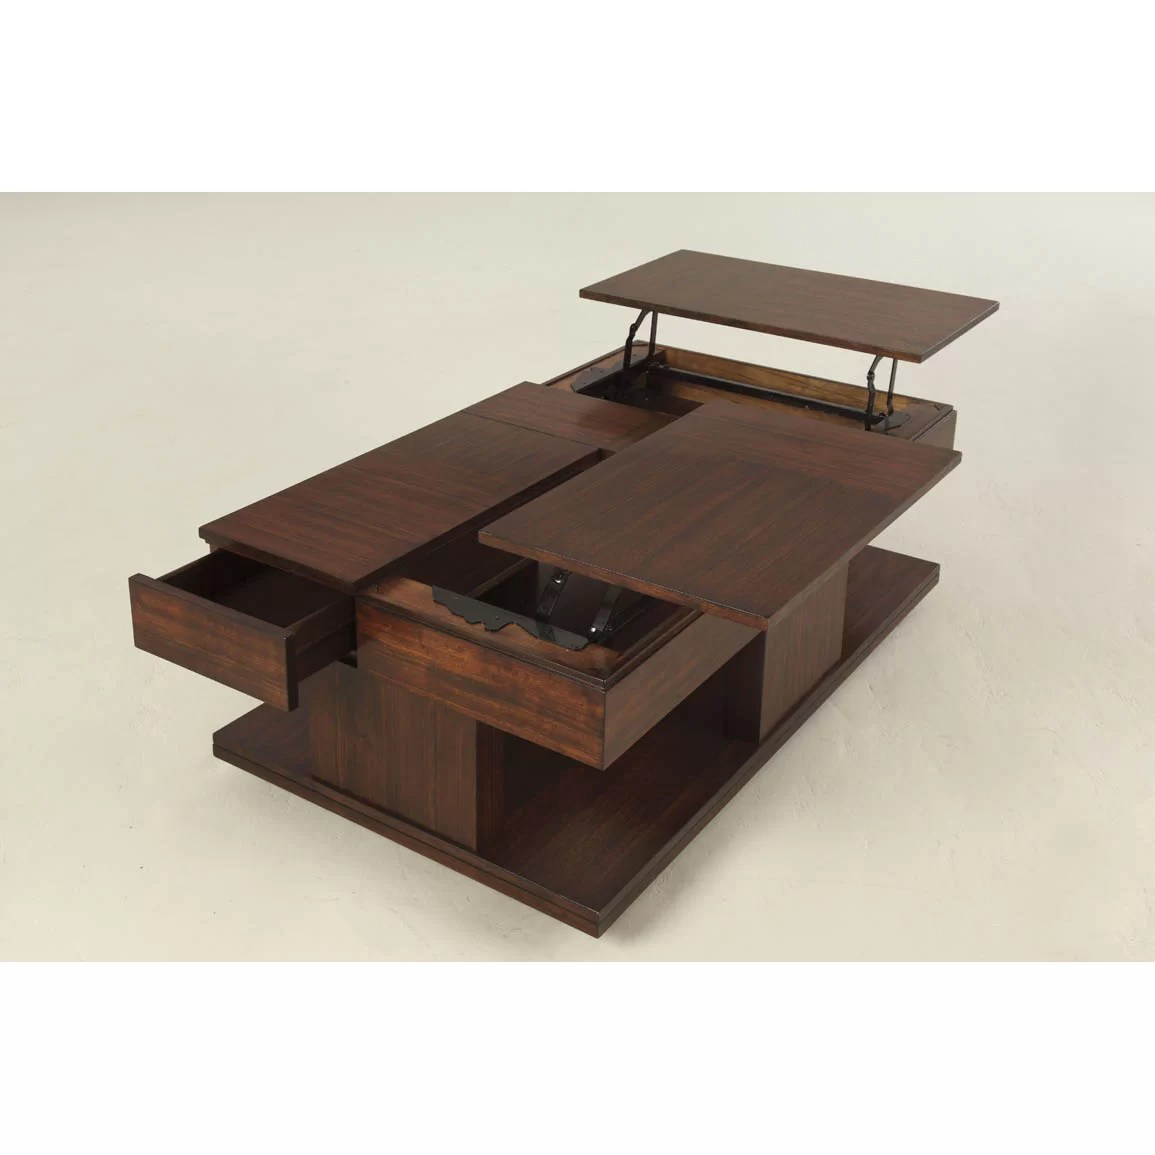 Top Lift Coffee Table Darby Home Co Dail Coffee Table With Double Lift Top